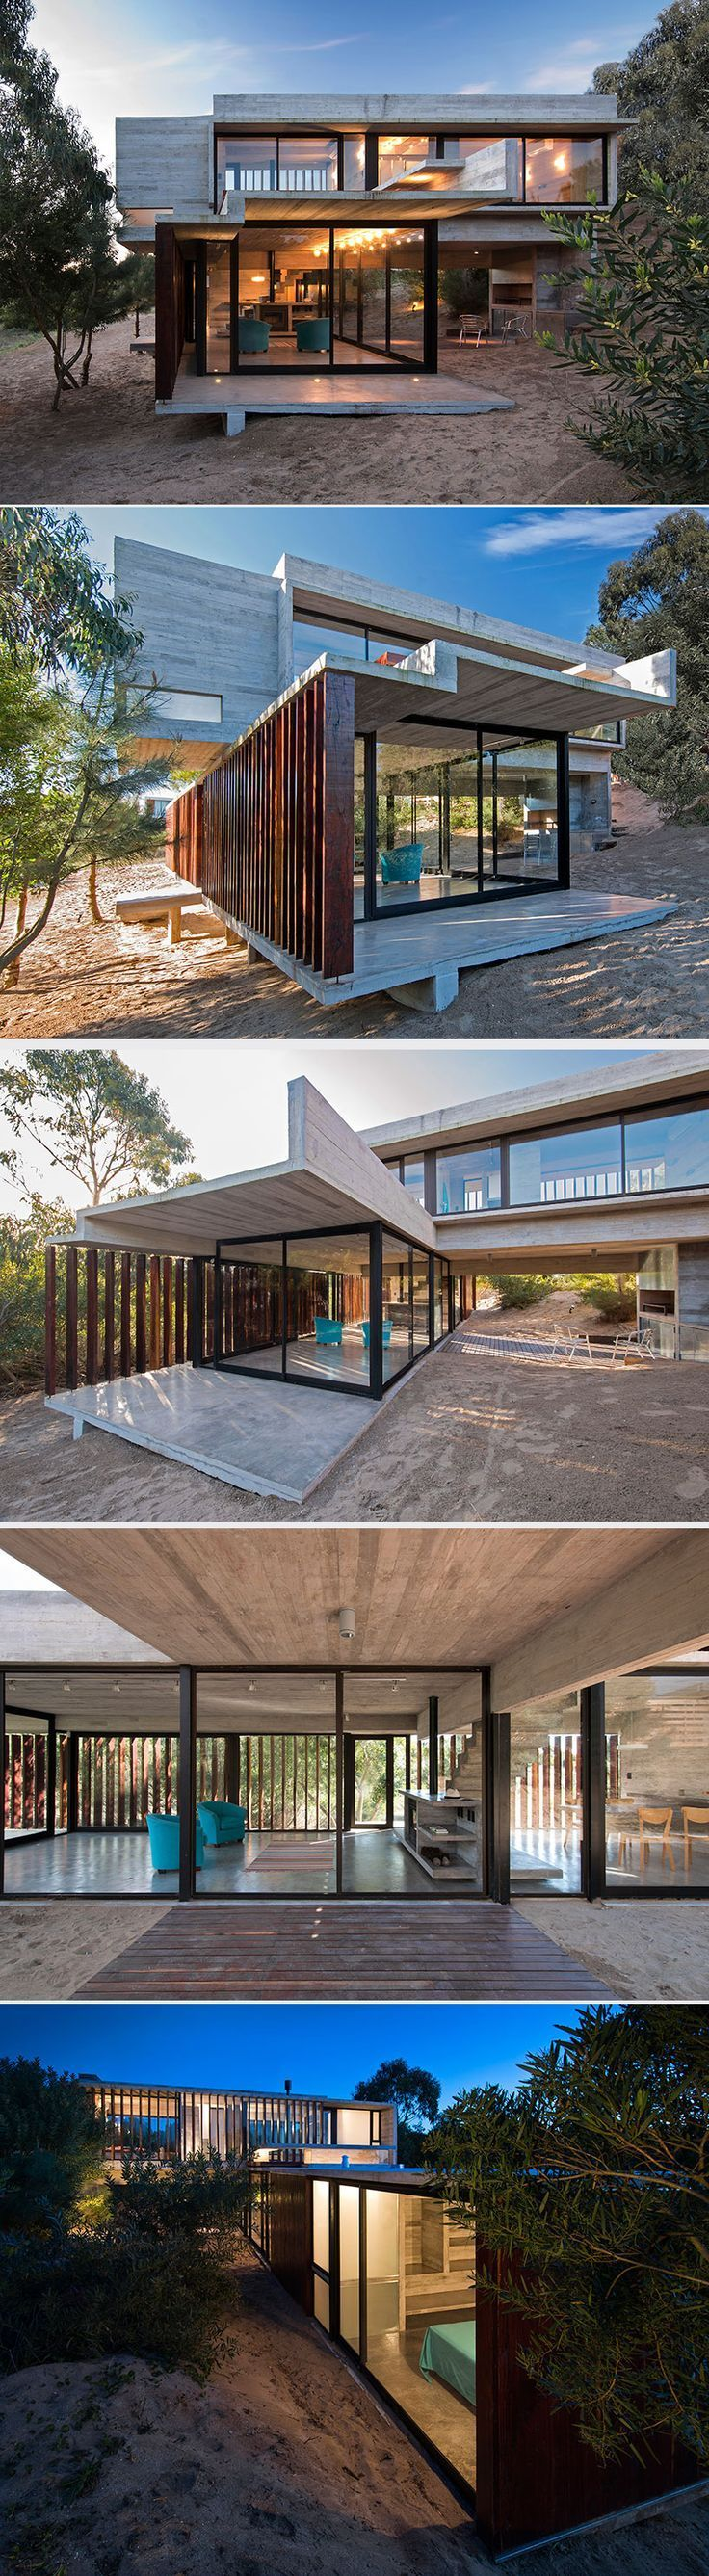 Queensland australia 7 modern home design ideas lakbermagazin - Modern House Design Architecture Luciano Kruk Forms Mr House Of Folded Concrete And Wooden